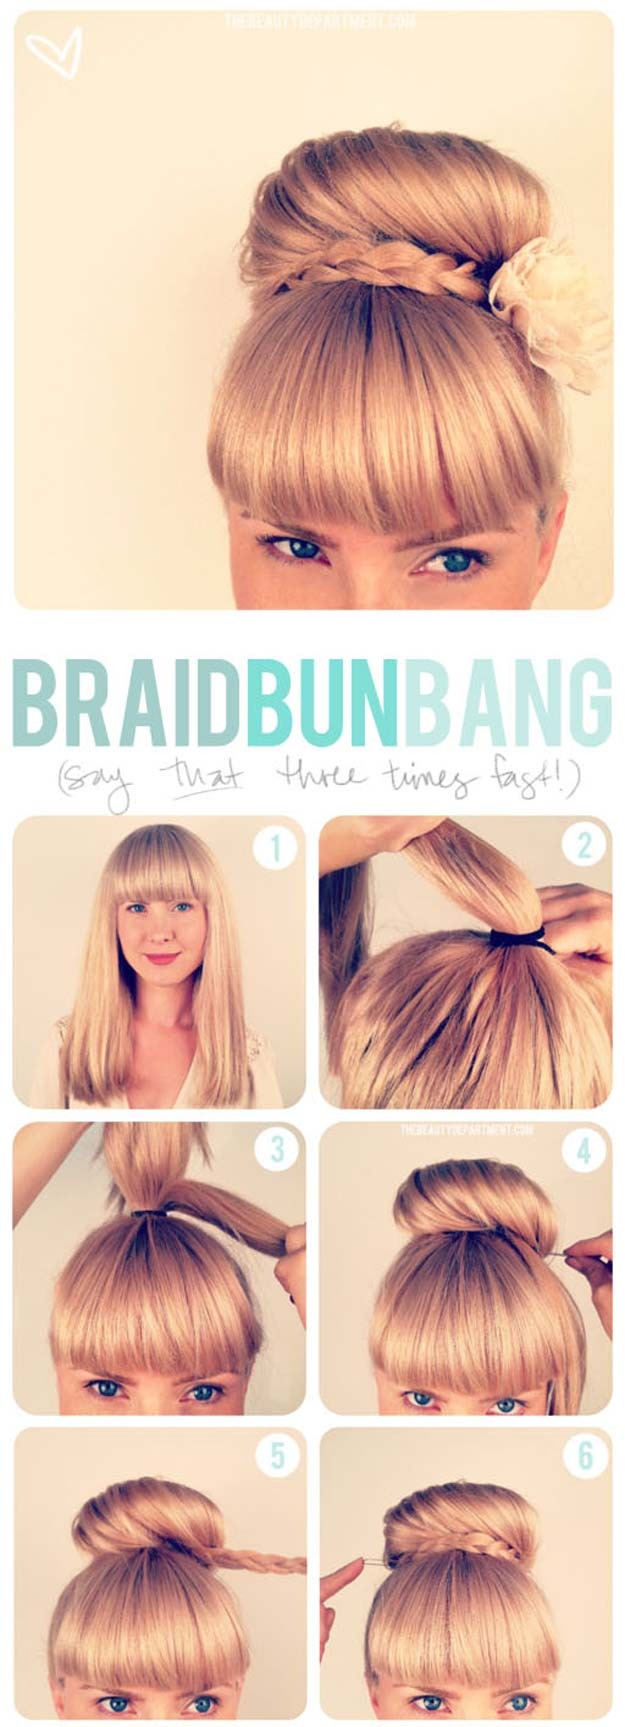 Creative DIY Hair Tutorials - Updo + Bangs - Color, Rainbow, Galaxy and Unique Styles for Long, Short and Medium Hair - Braids, Dyes, Instructions for Teens and Women #hairstyles #hairideas #beauty #teens #easyhairstyles